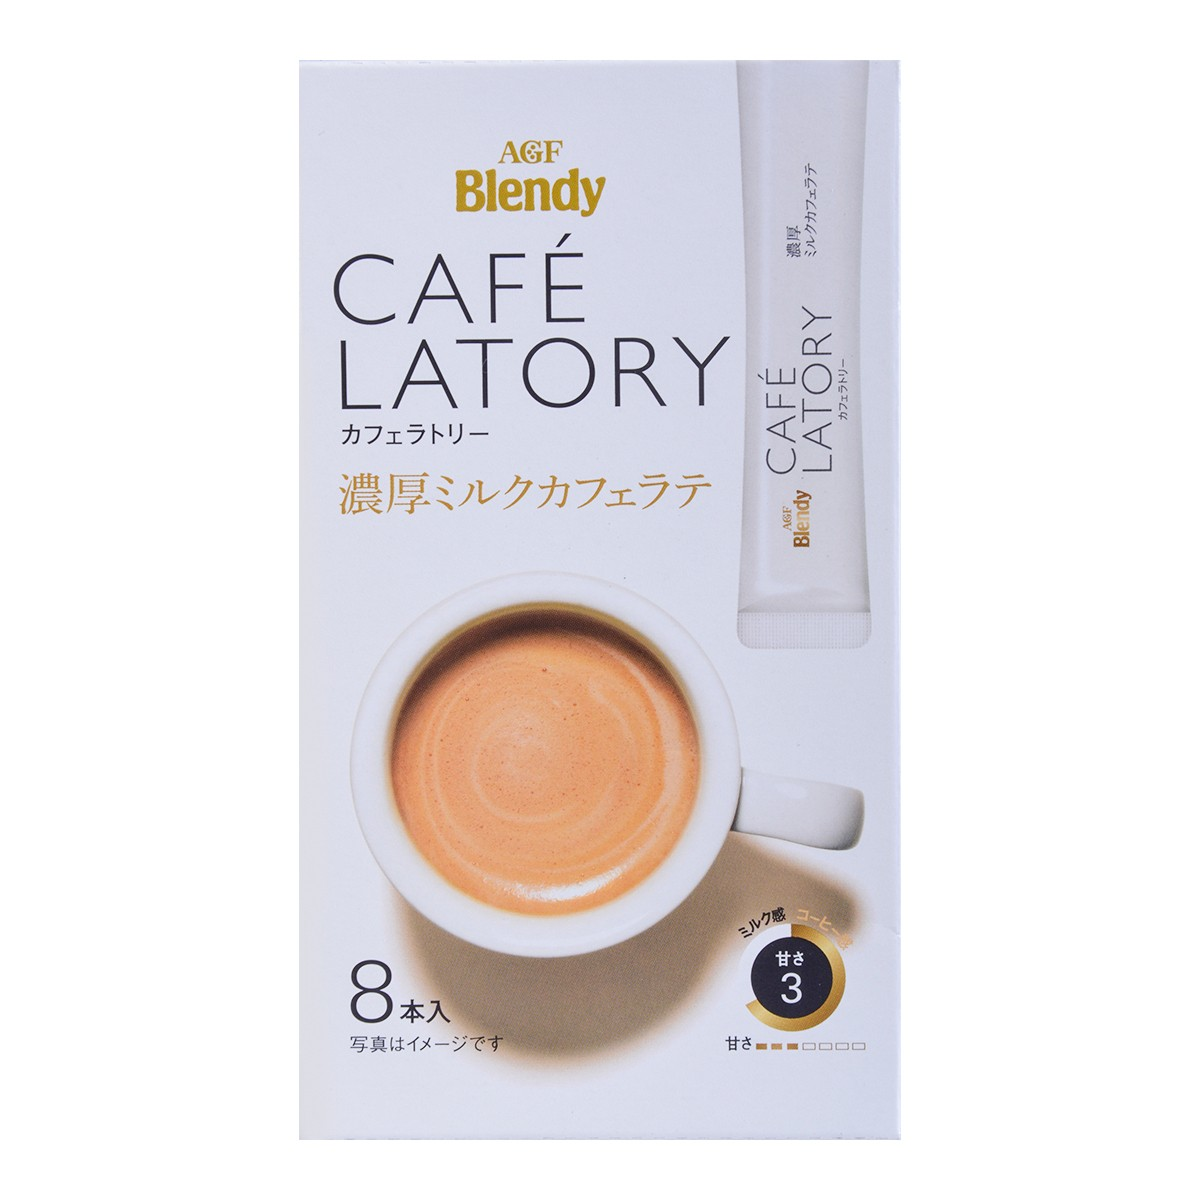 AGF Blendy CAFE LATORY Cafe Latte 80g